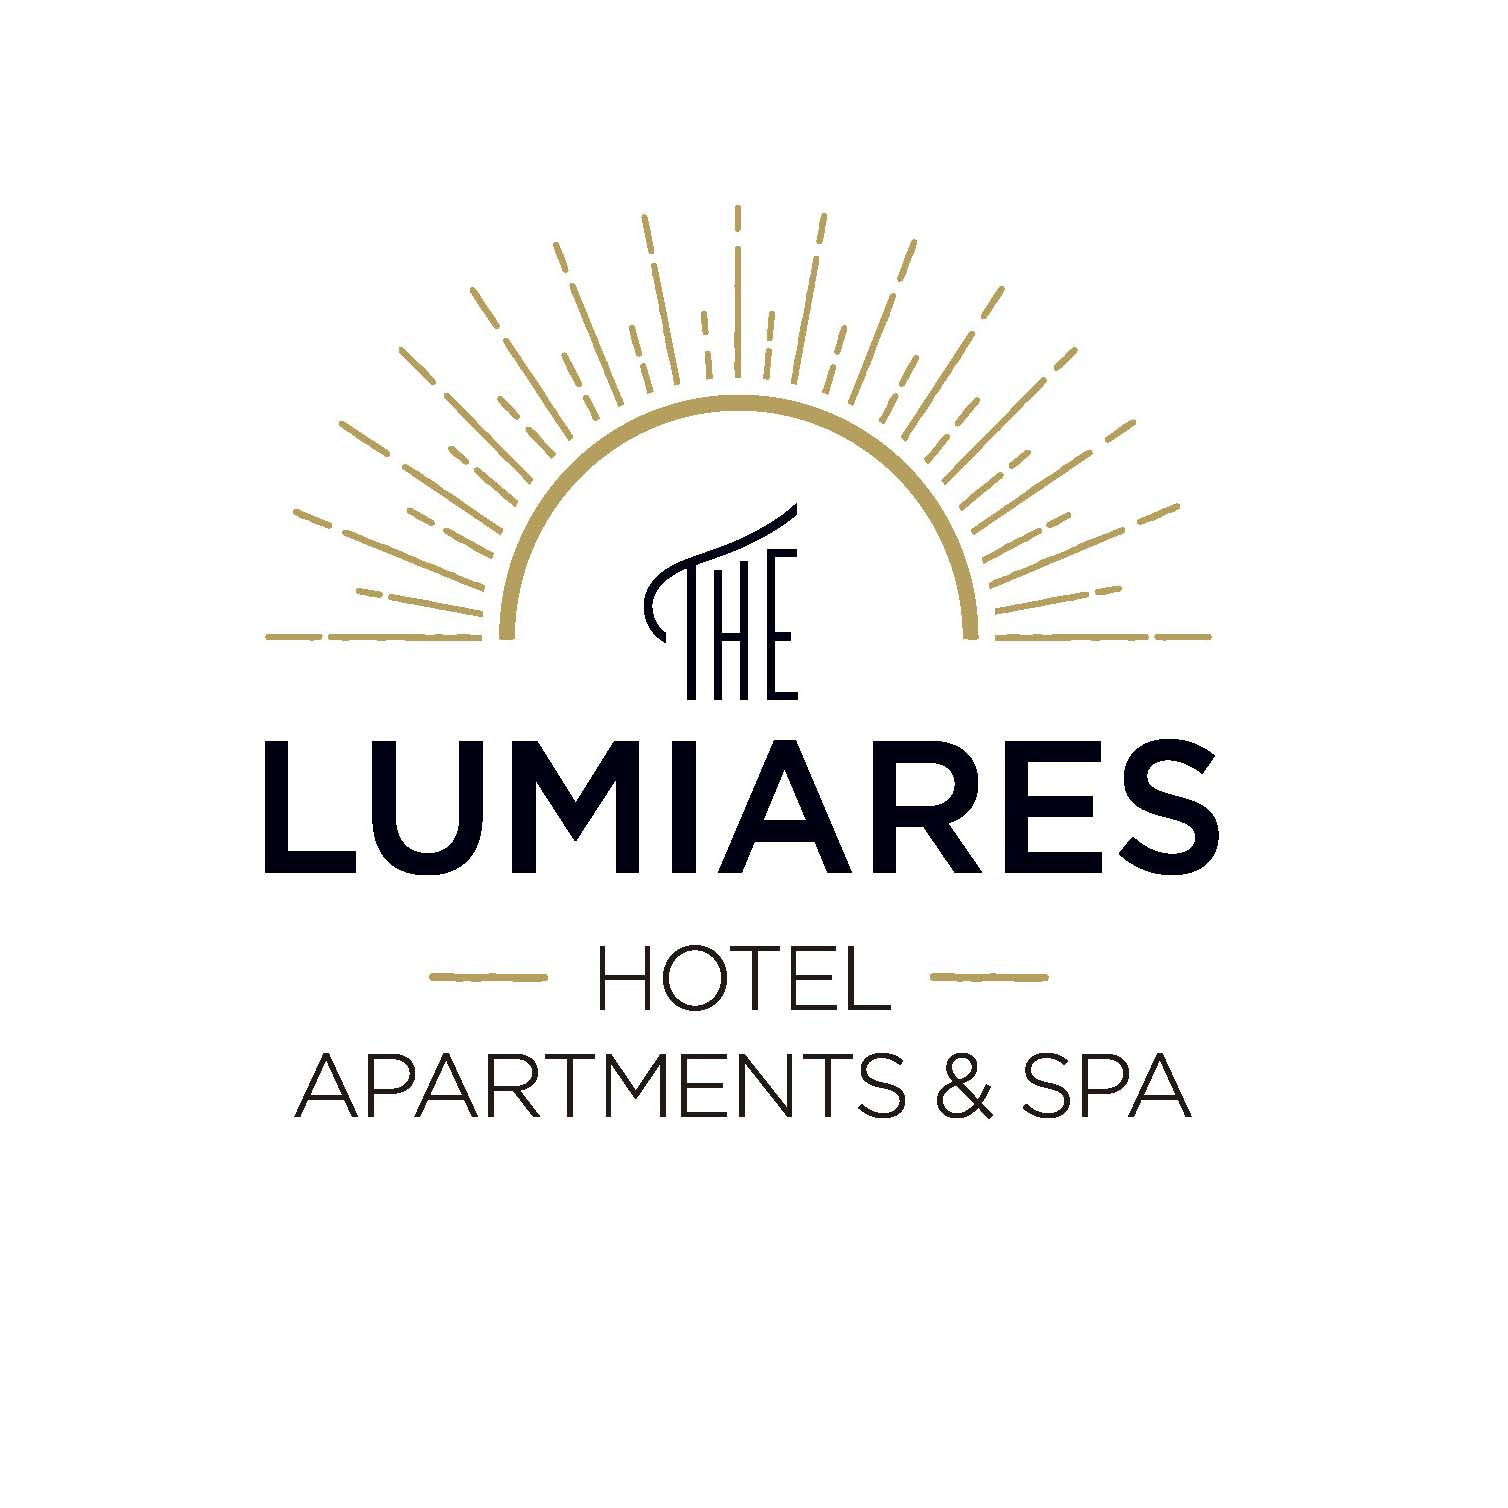 The Lumiares Hotel & Spa